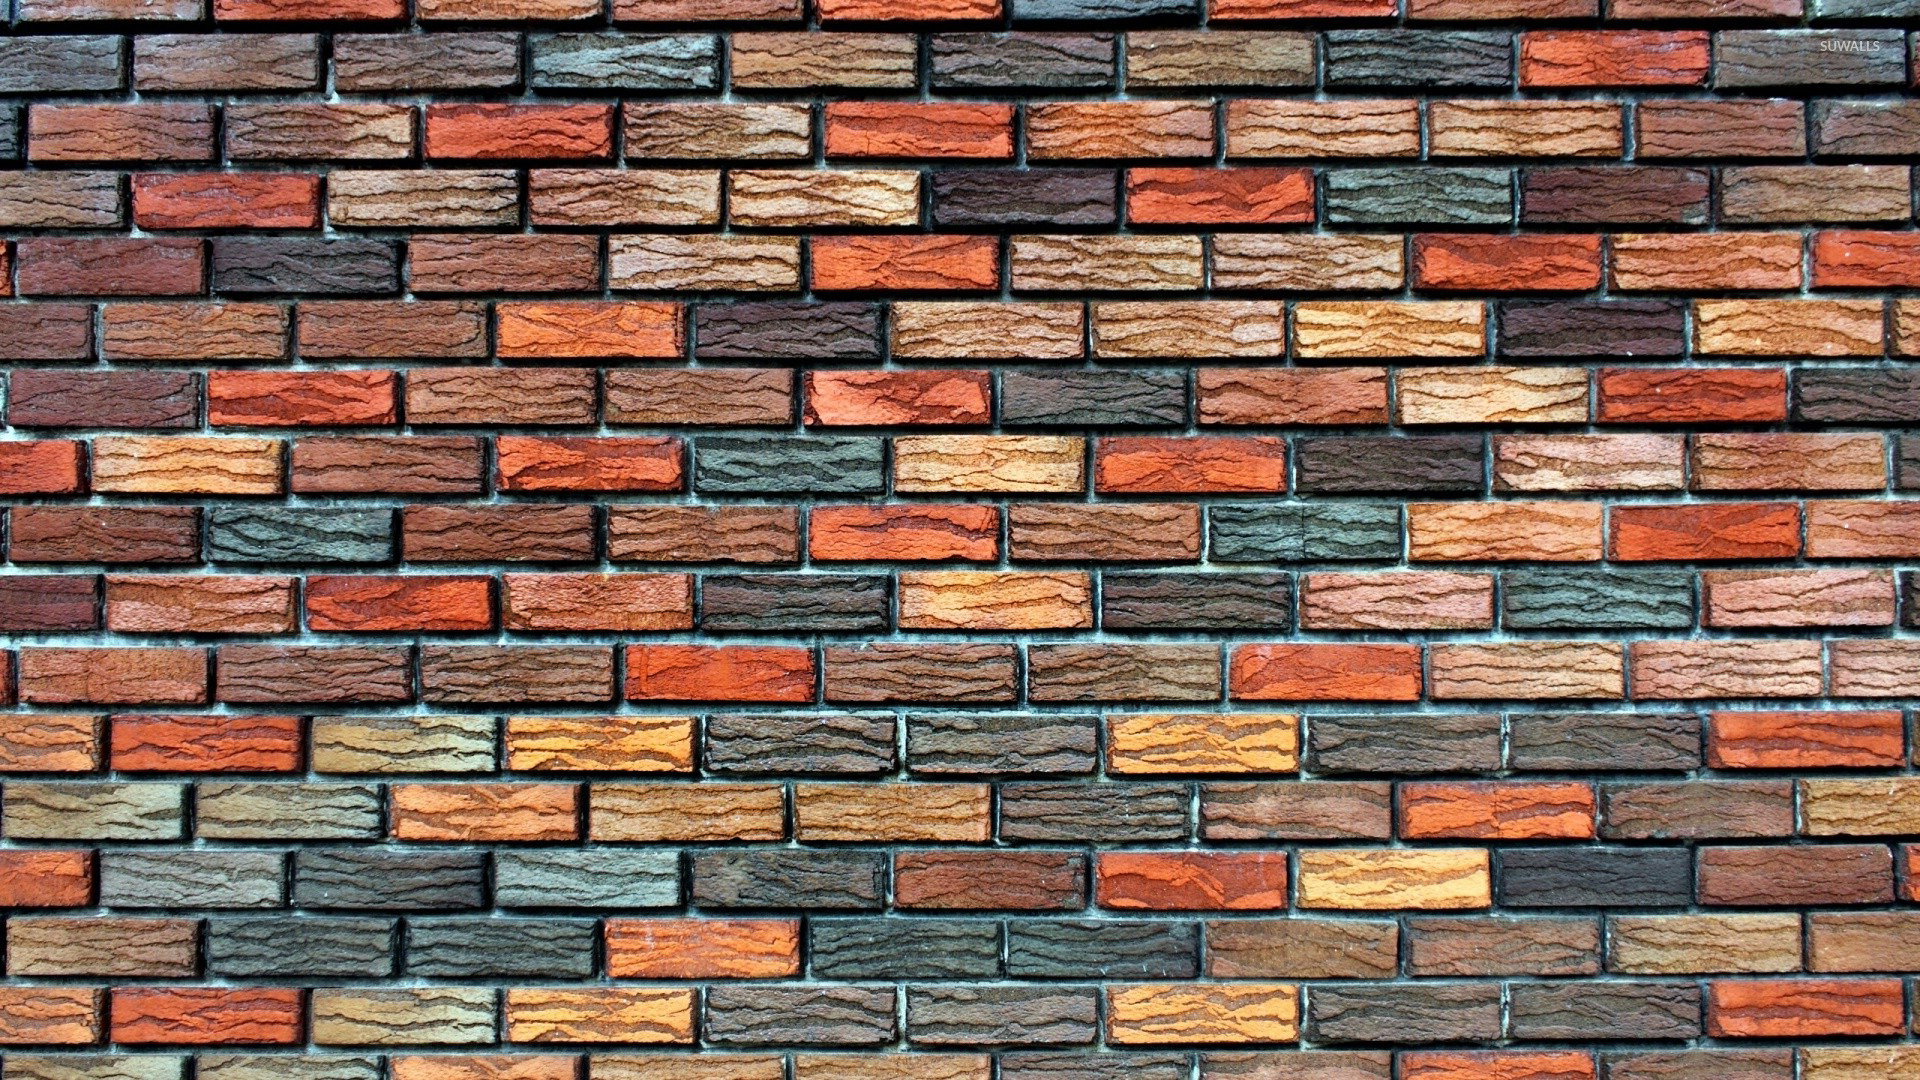 Brick wall wallpaper photography wallpapers 22360 for Wallpapered walls